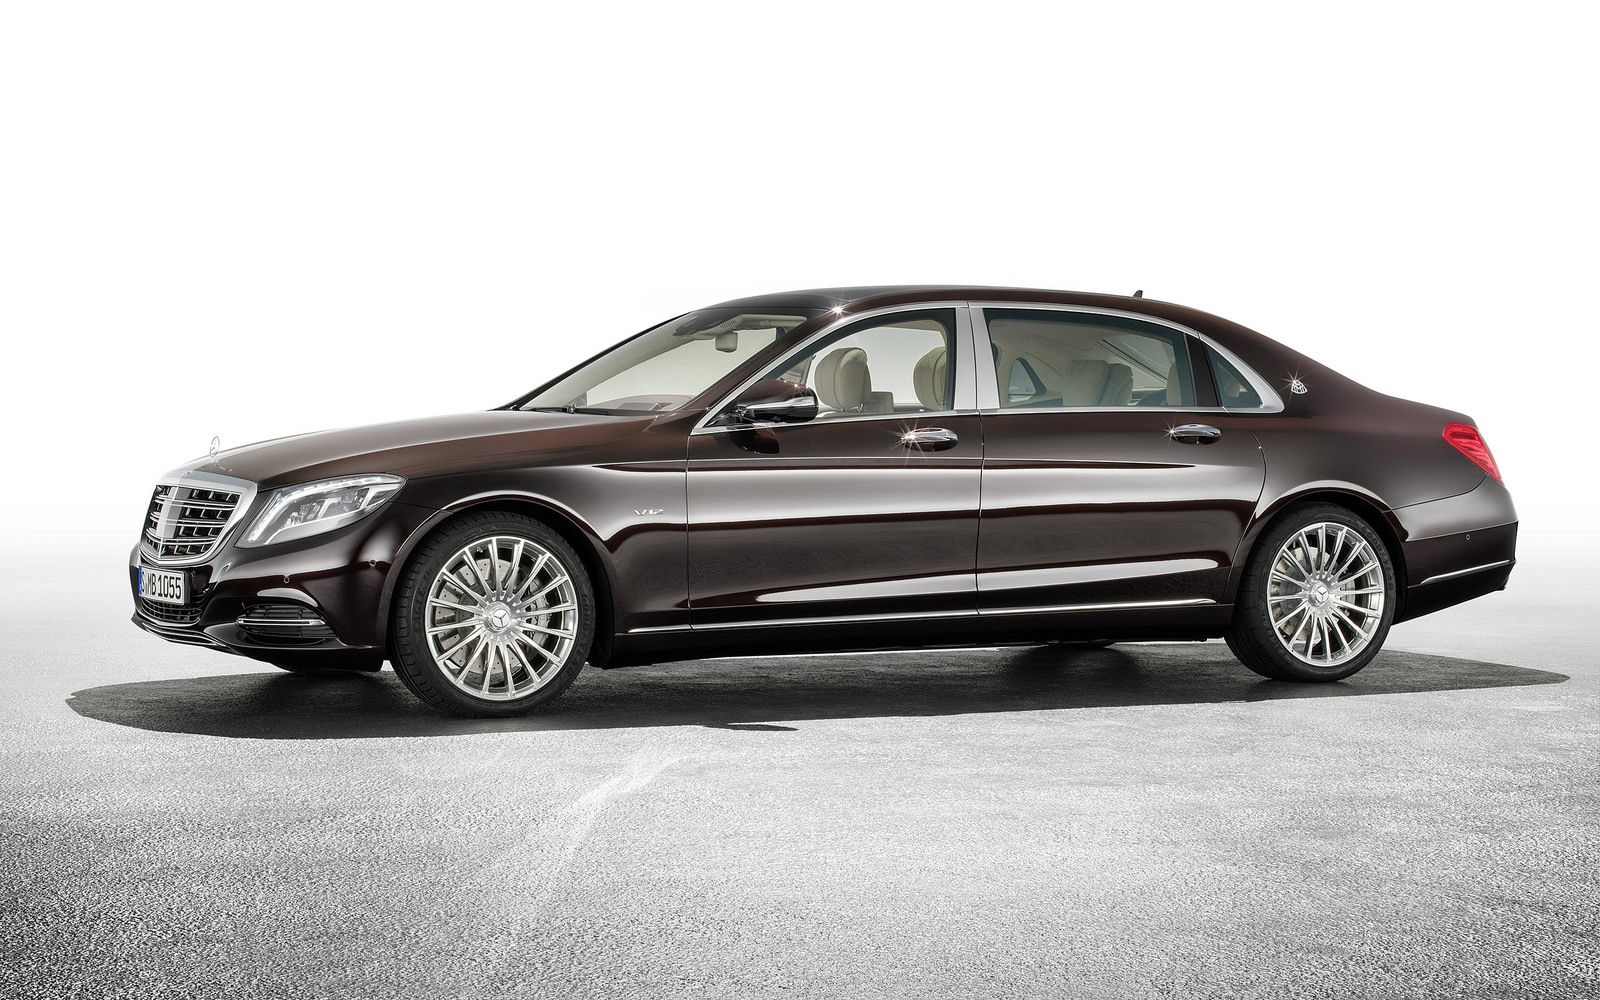 2014 Mercedes-Benz Maybach S-Class | Flickr - Photo Sharing!